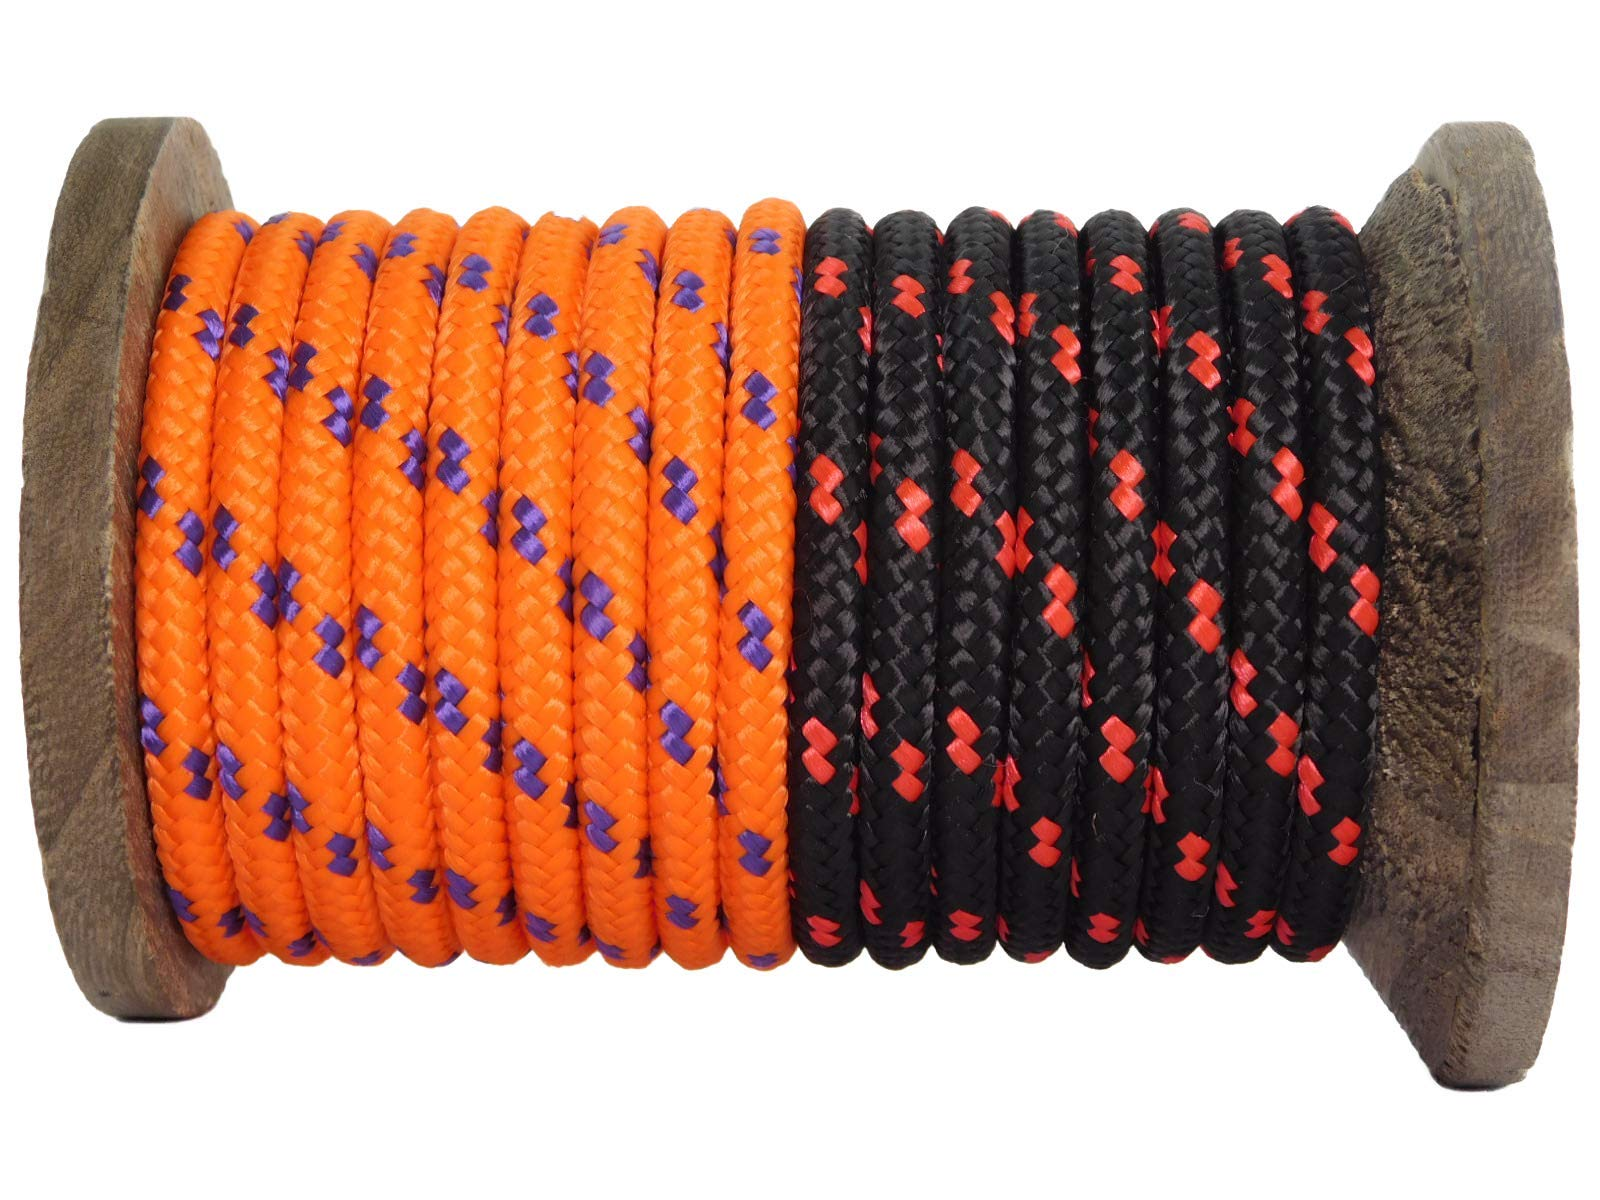 """Knot Tying Atwood Rope MFG Braided Utility Rope Flag Poles Halters Strong Versatile Rope for Camping DIY 1//4/"""" 100 ft Camo Made in USA Survival"""